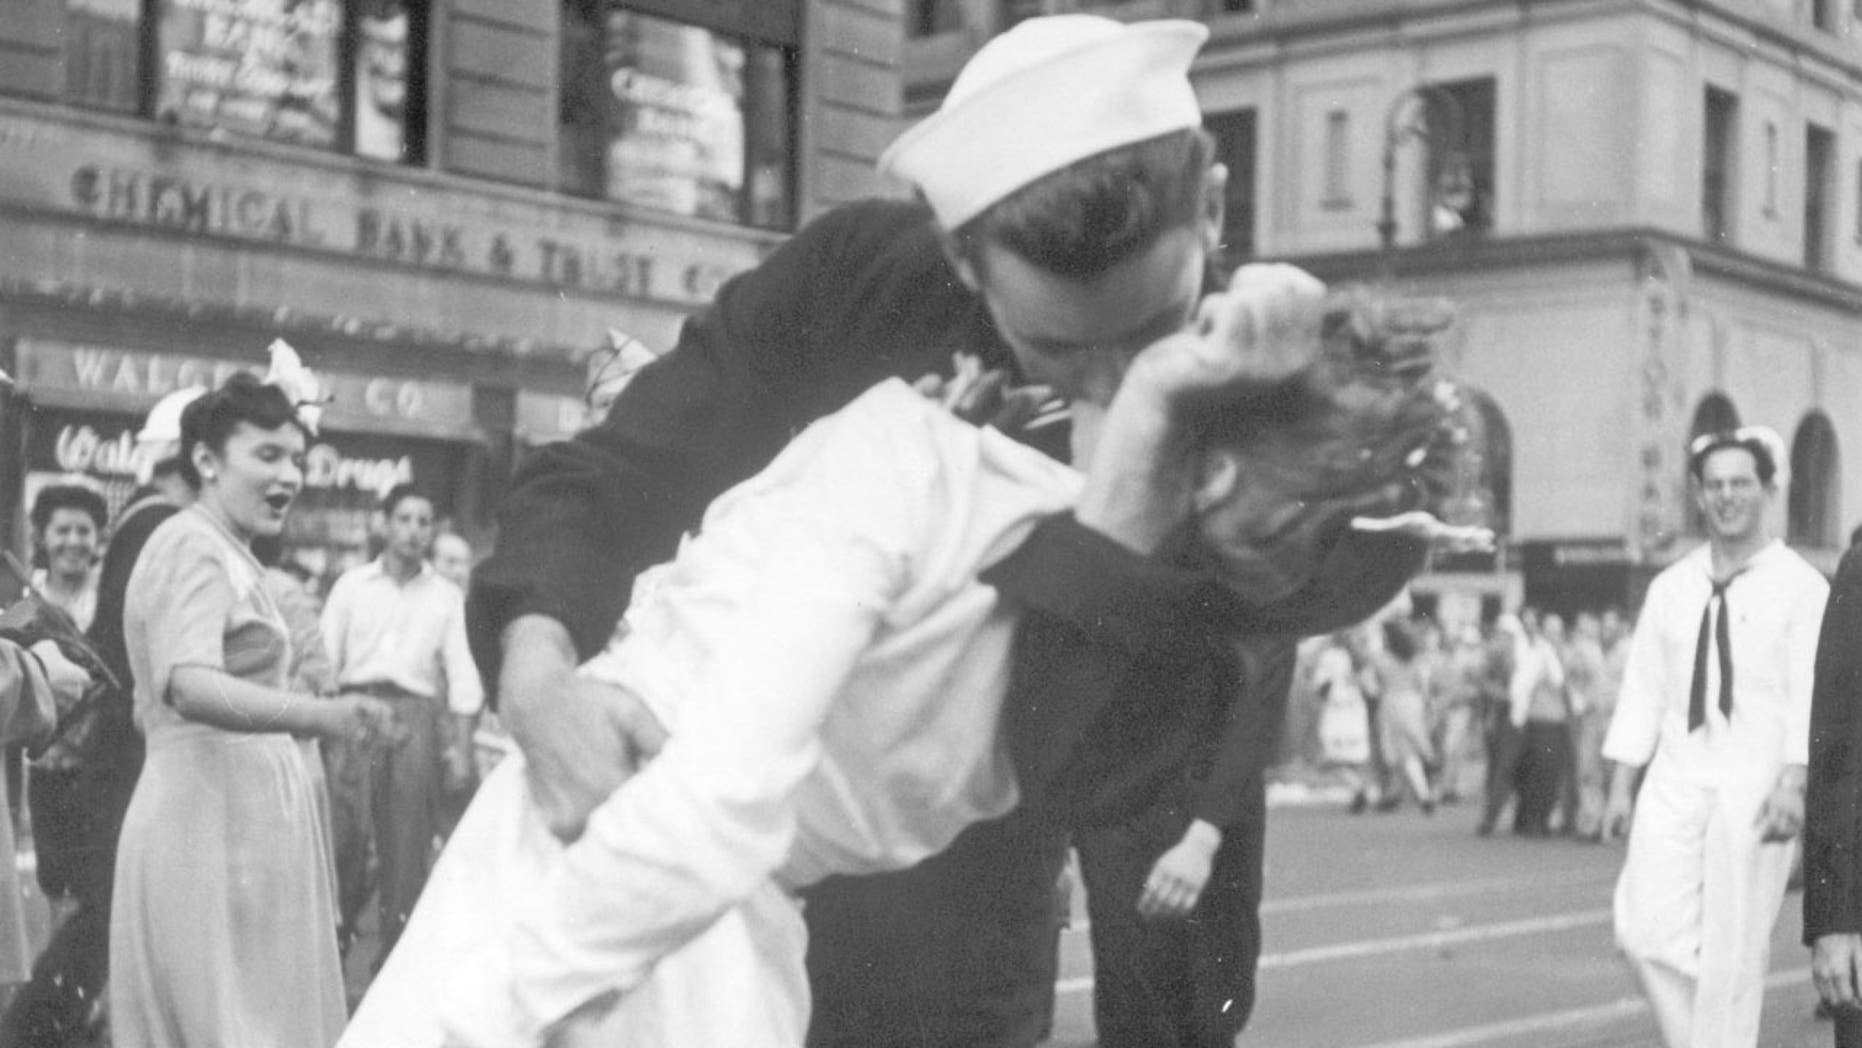 The ecstatic sailor shown kissing a woman in Times Square celebrating the end of World War II has died. George Mendonsa was 95. It was years after the photo was taken that Mendonsa and Greta Zimmer Friedman, a dental assistant in a nurse's uniform, were confirmed to be the couple.